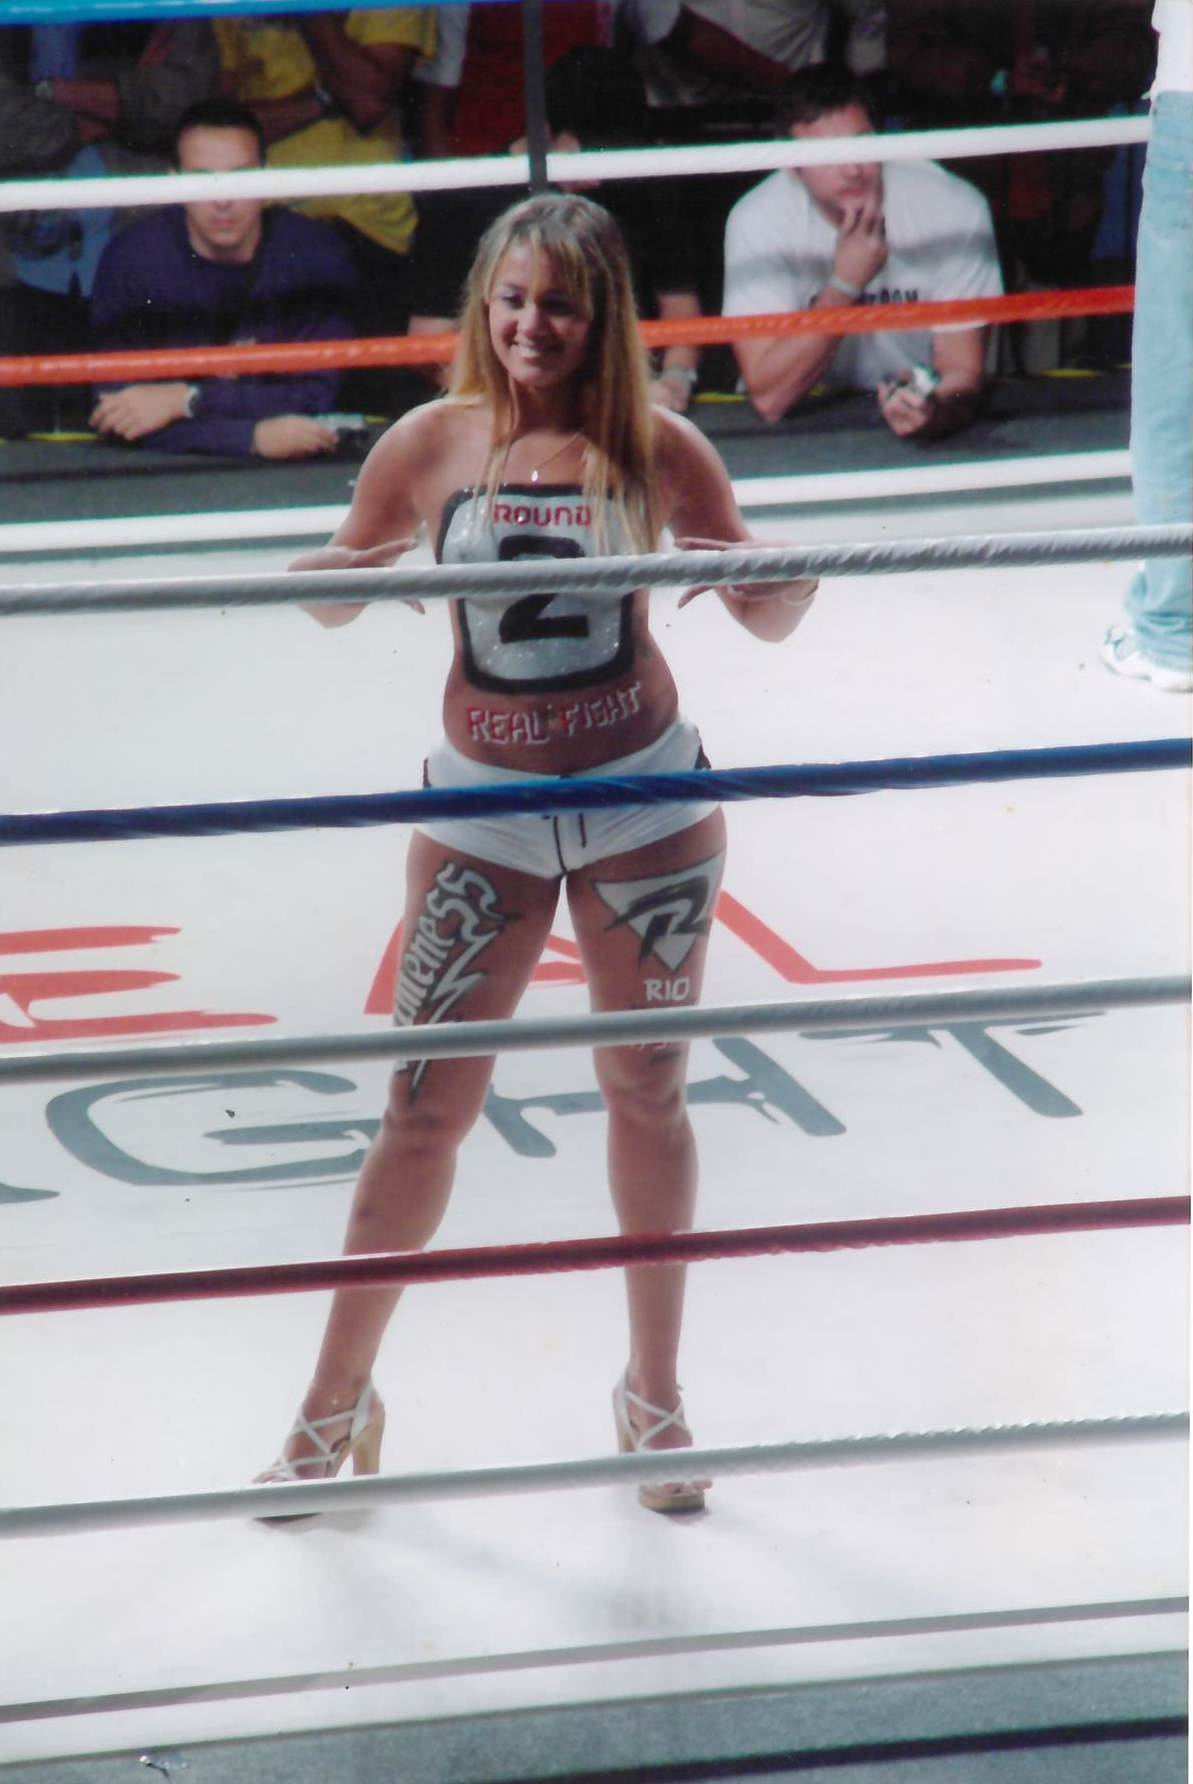 35 - Ring Girls